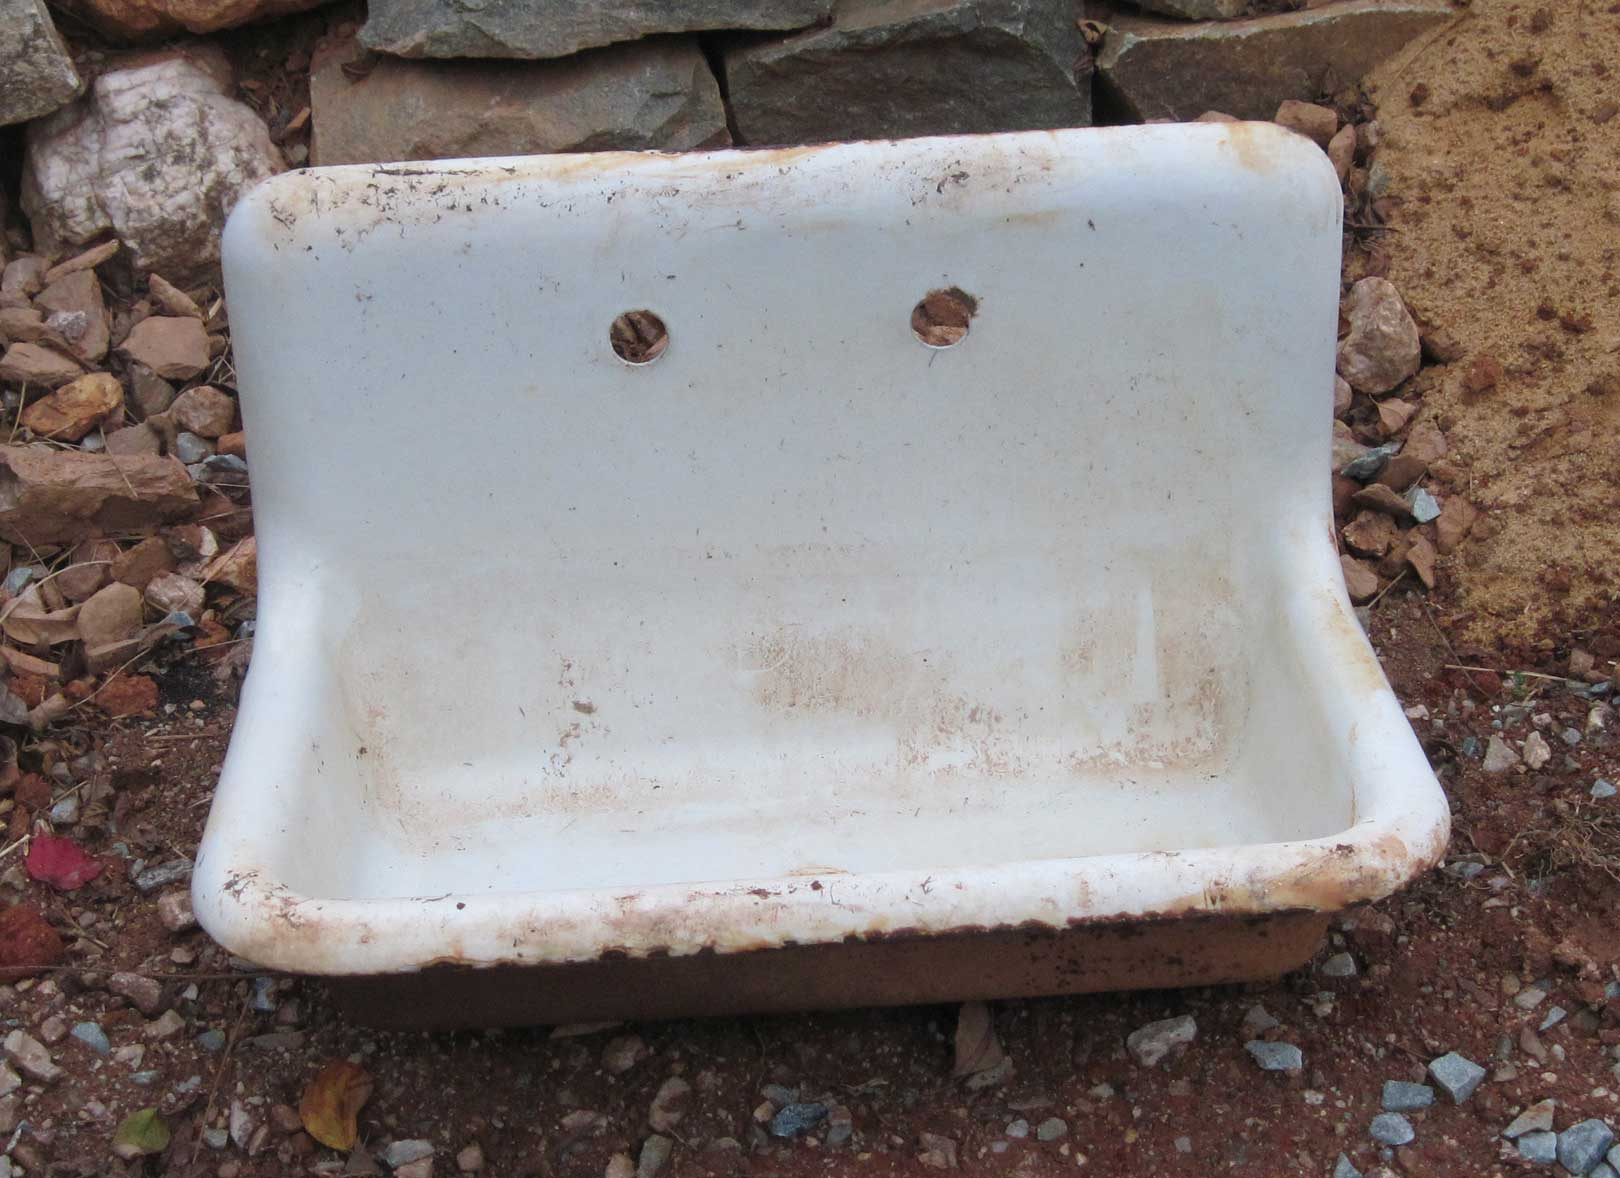 cast iron sink as a work of art vintage kitchen sink Apparently